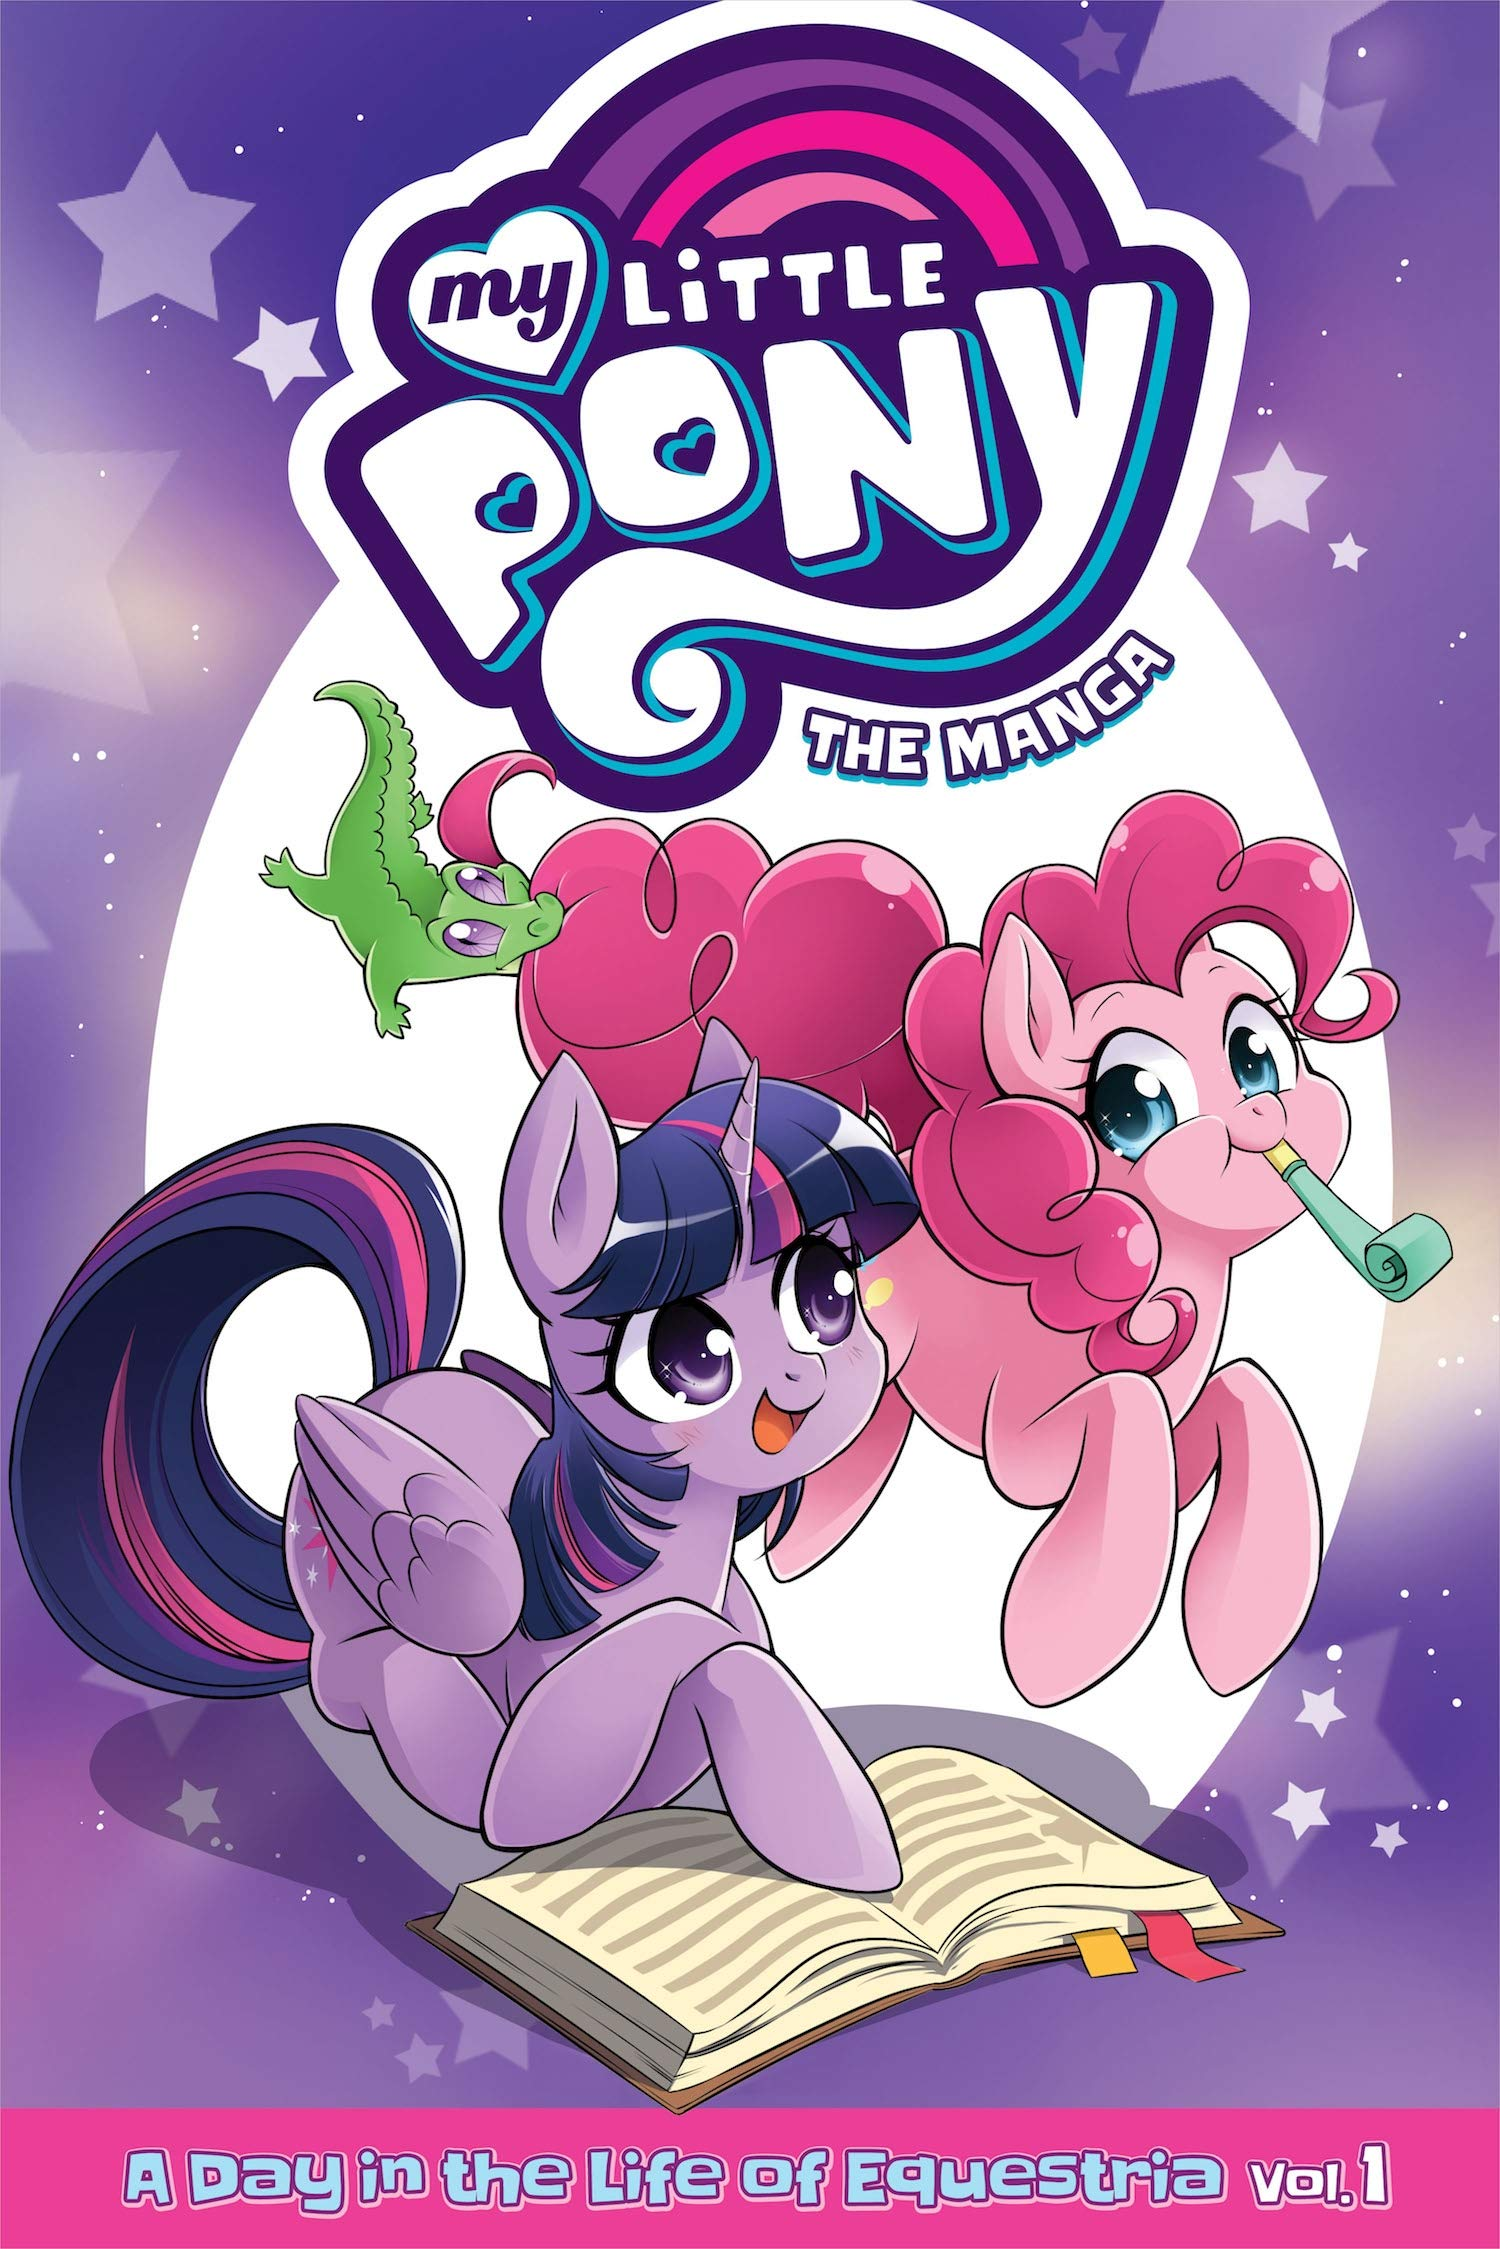 MY LITTLE PONY MANGA 01 DAY IN LIFE EQUESTRIA (My Little Pony: The Manga - A Day in the Life of Equestria)